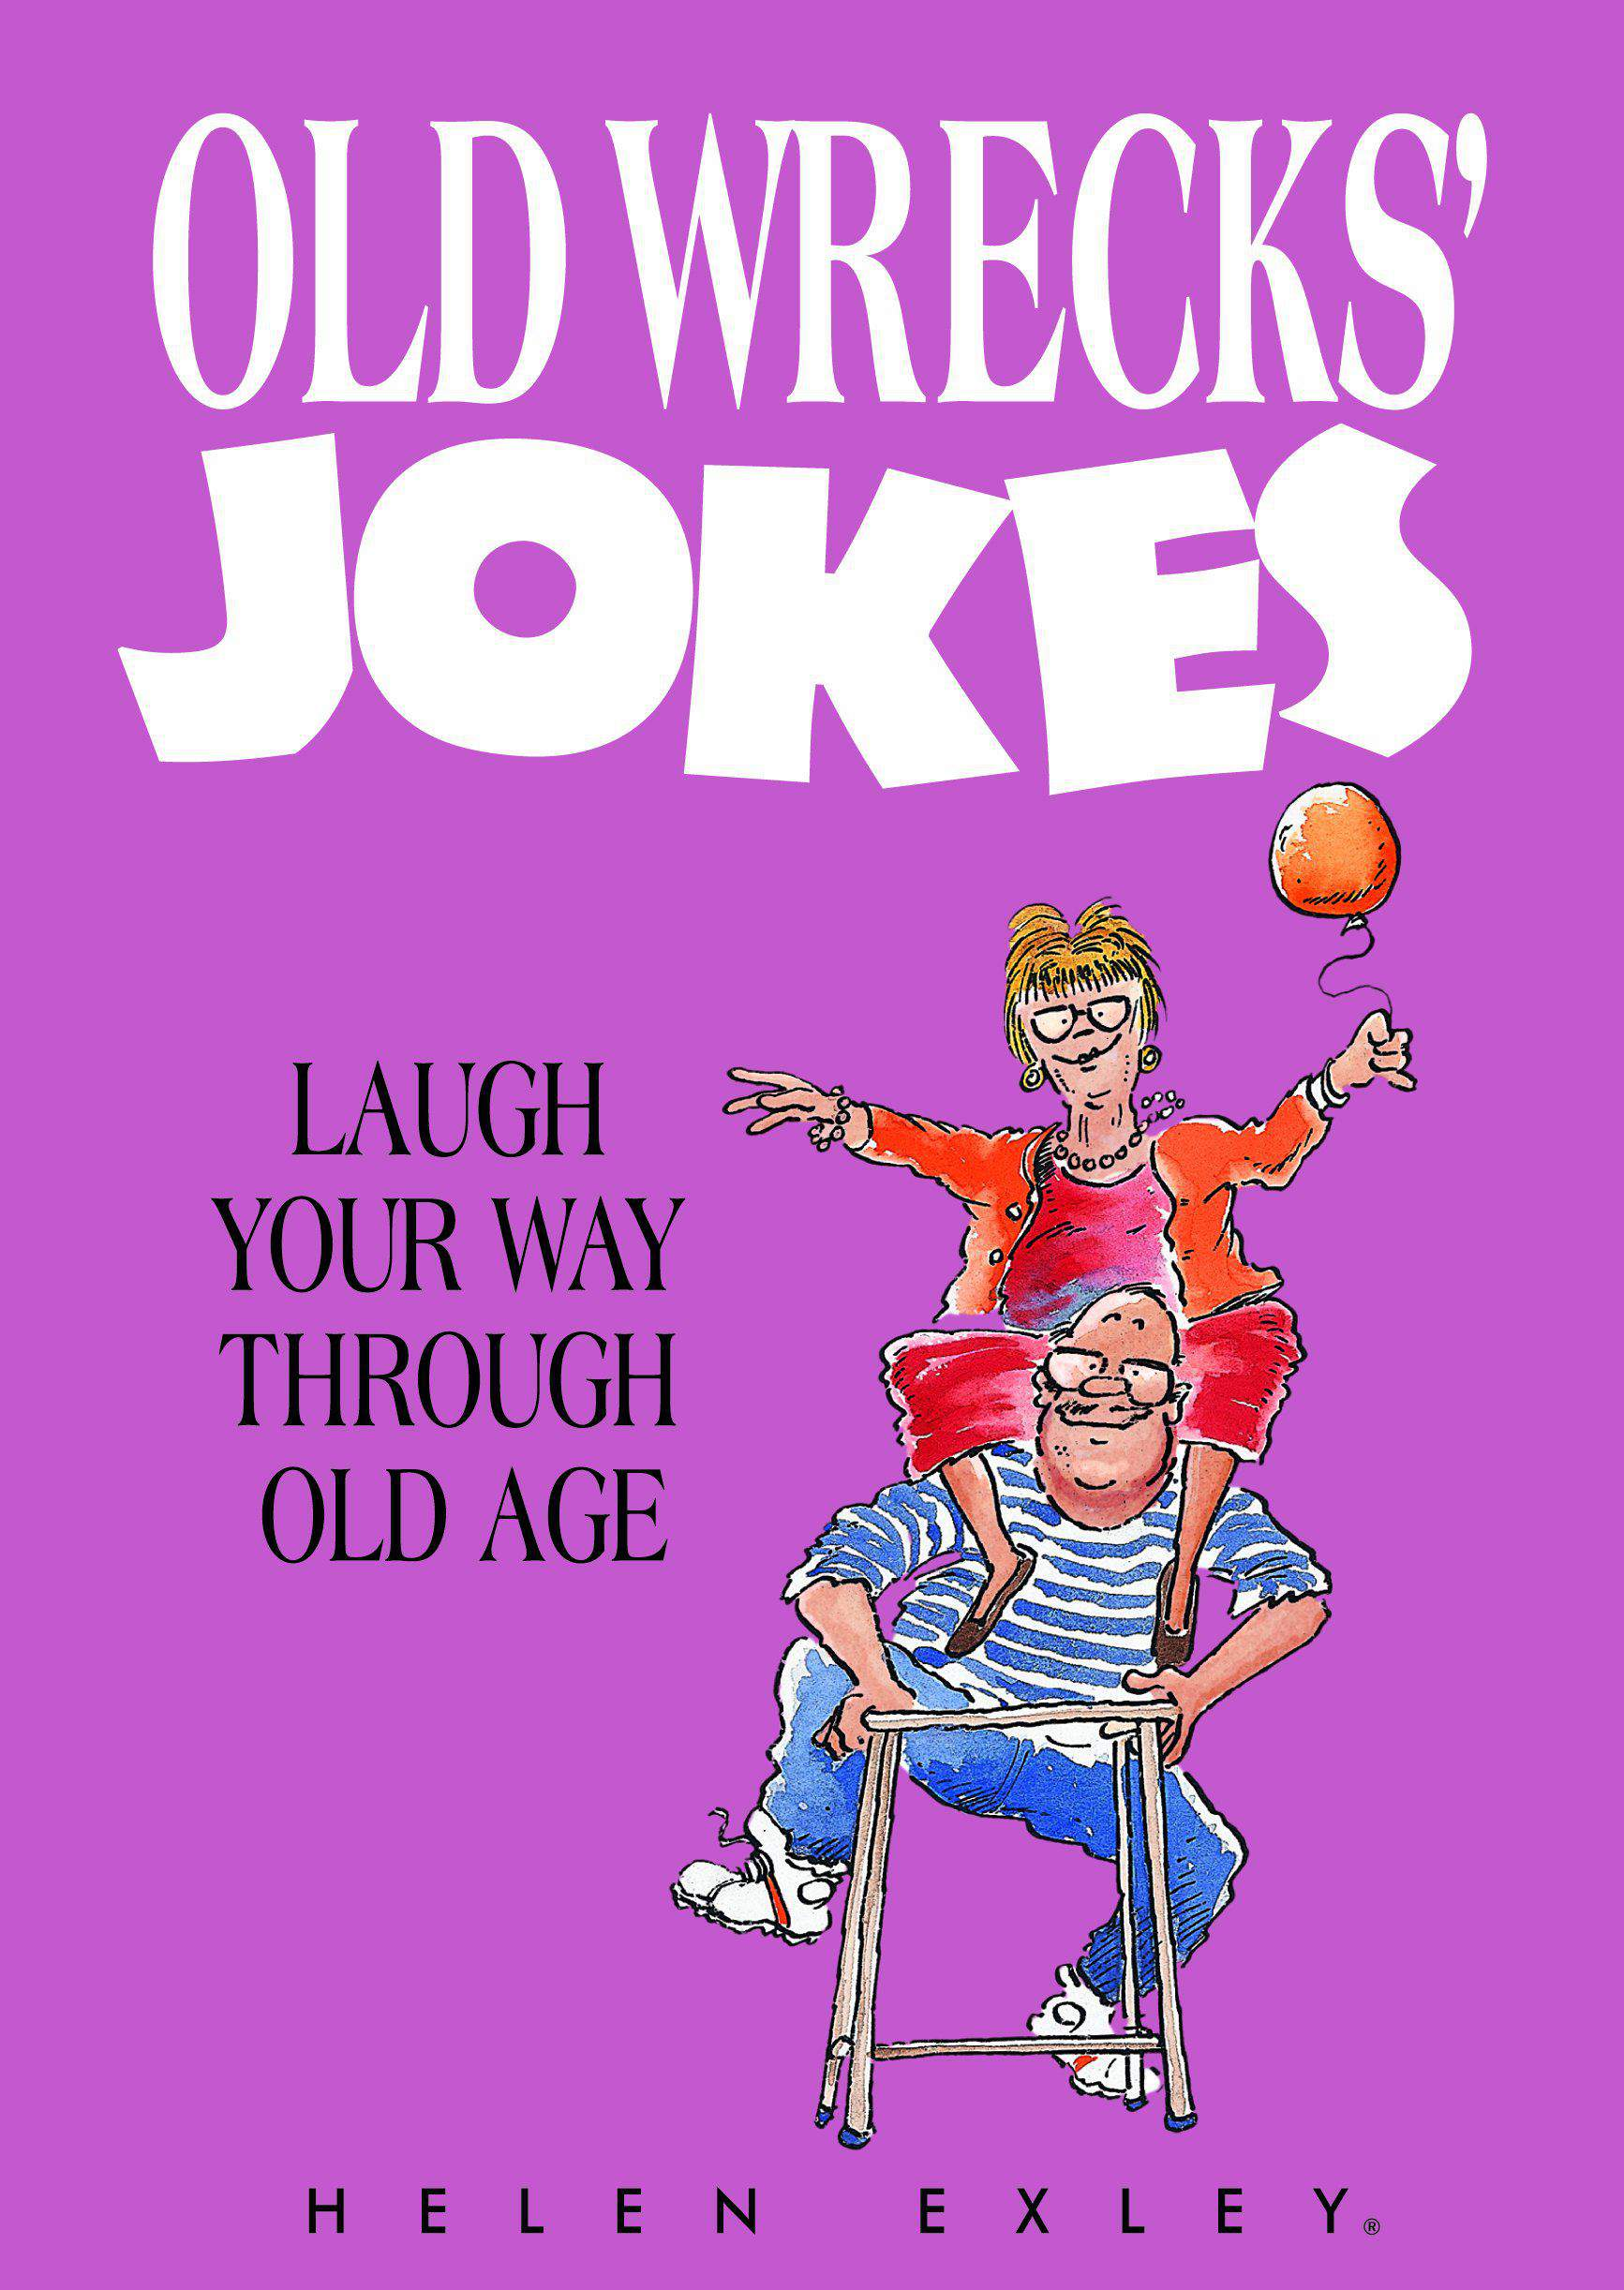 Old Wrecks Jokes Joke Book